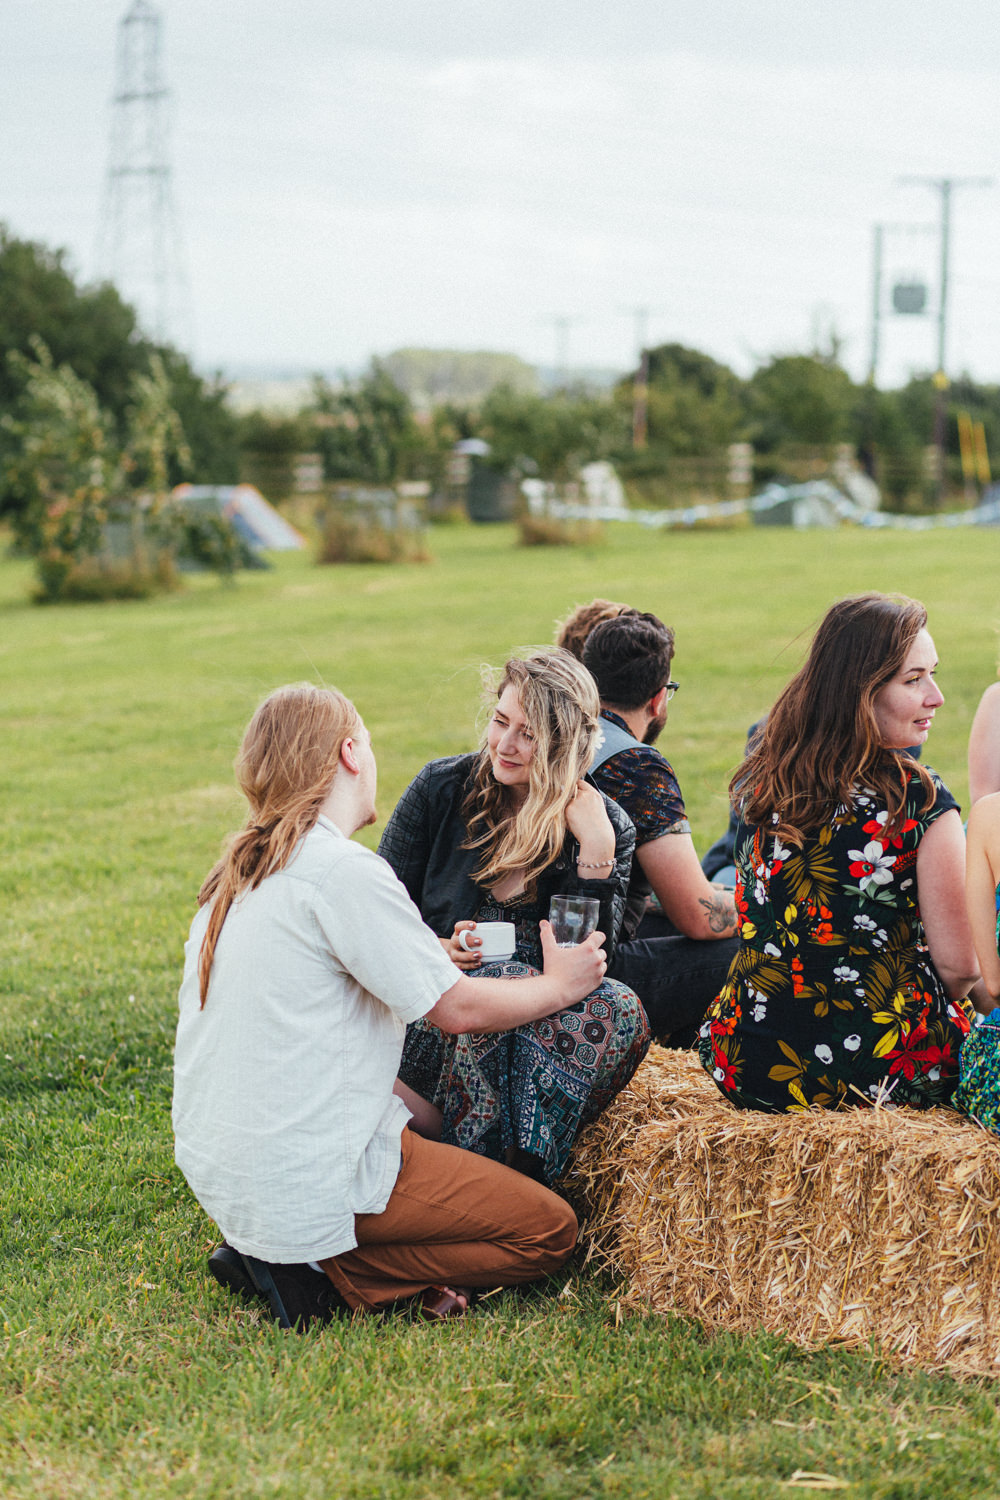 haybales, outdoor wedding photography, farm wedding, devon wedding, devon wedding photographer, alternative wedding, eco friendly wedding, green wedding